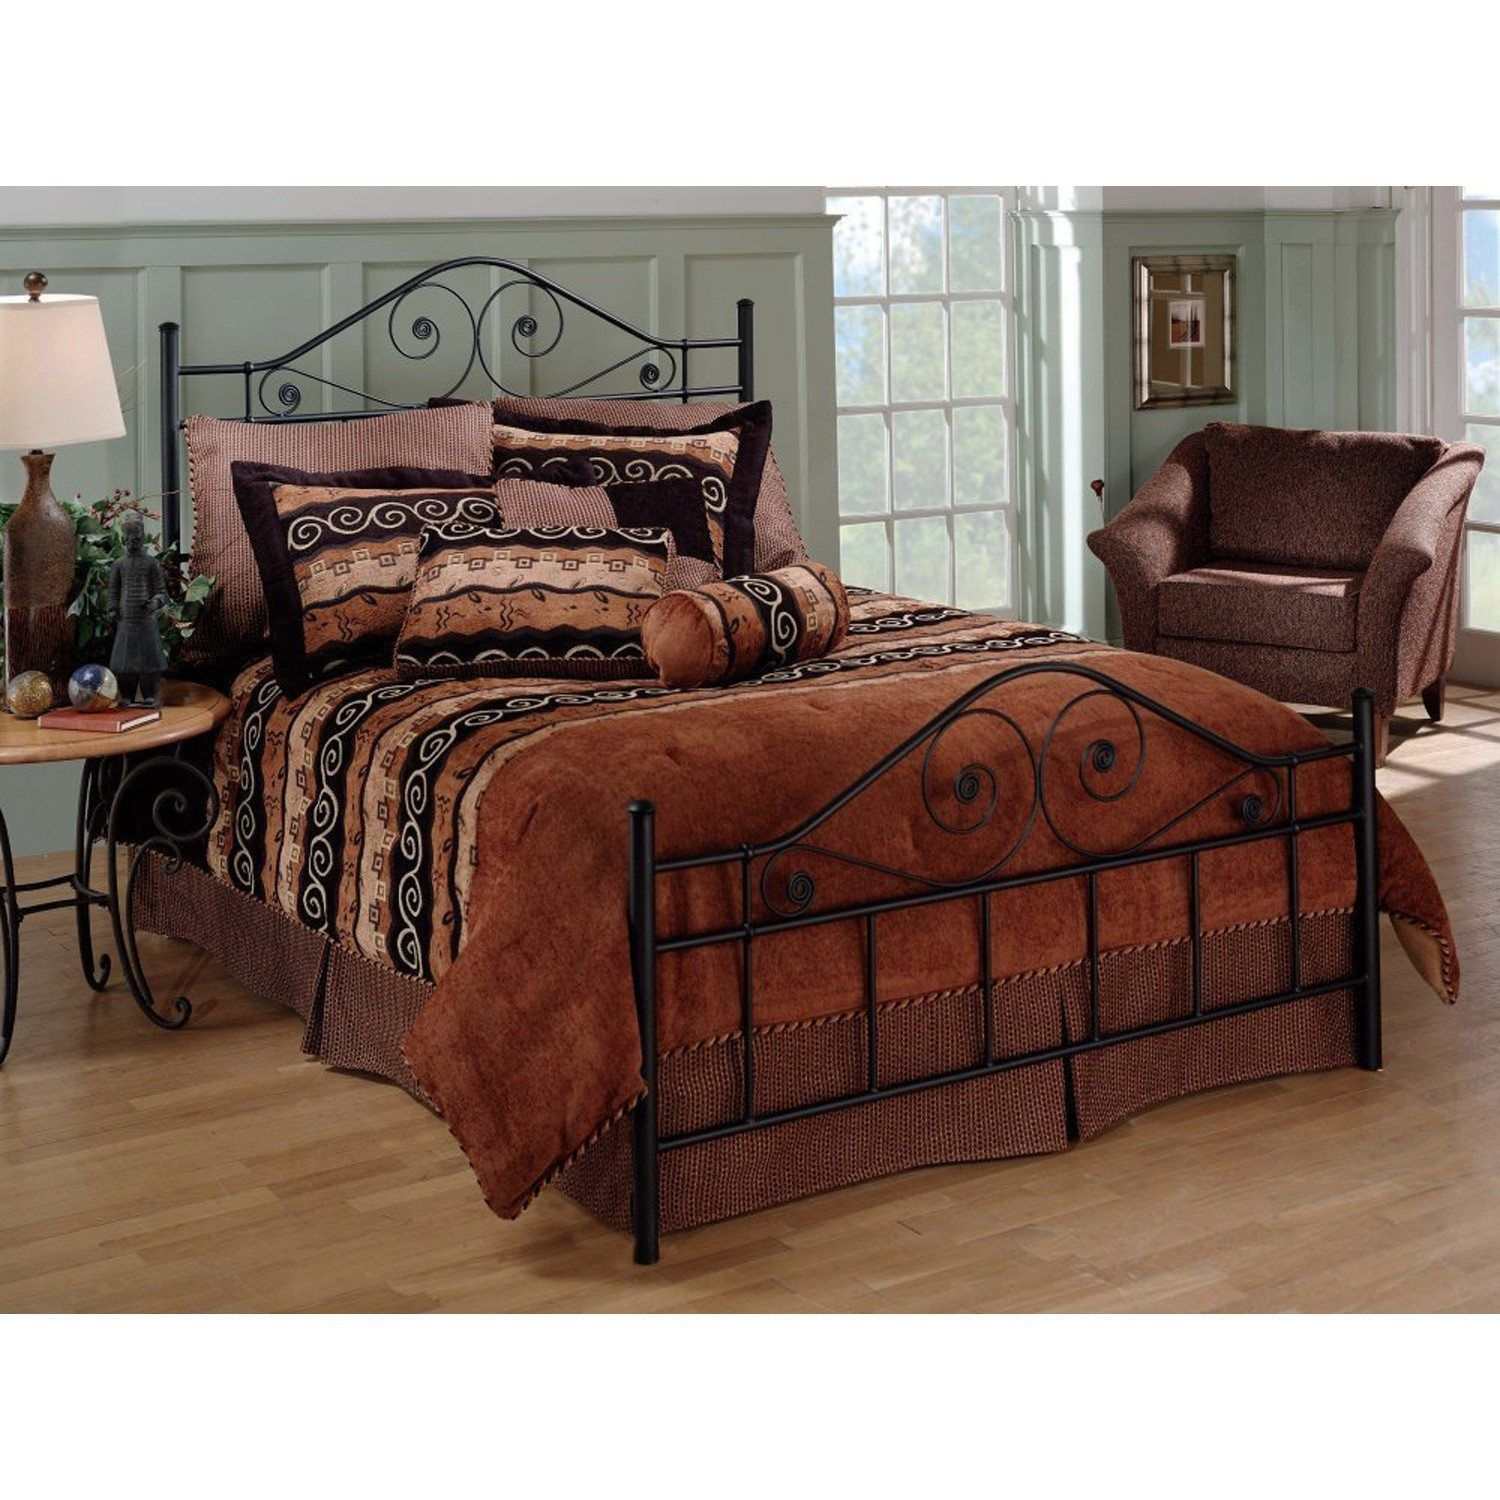 Queen size Black Metal Bed with Scrollwork Headboard and